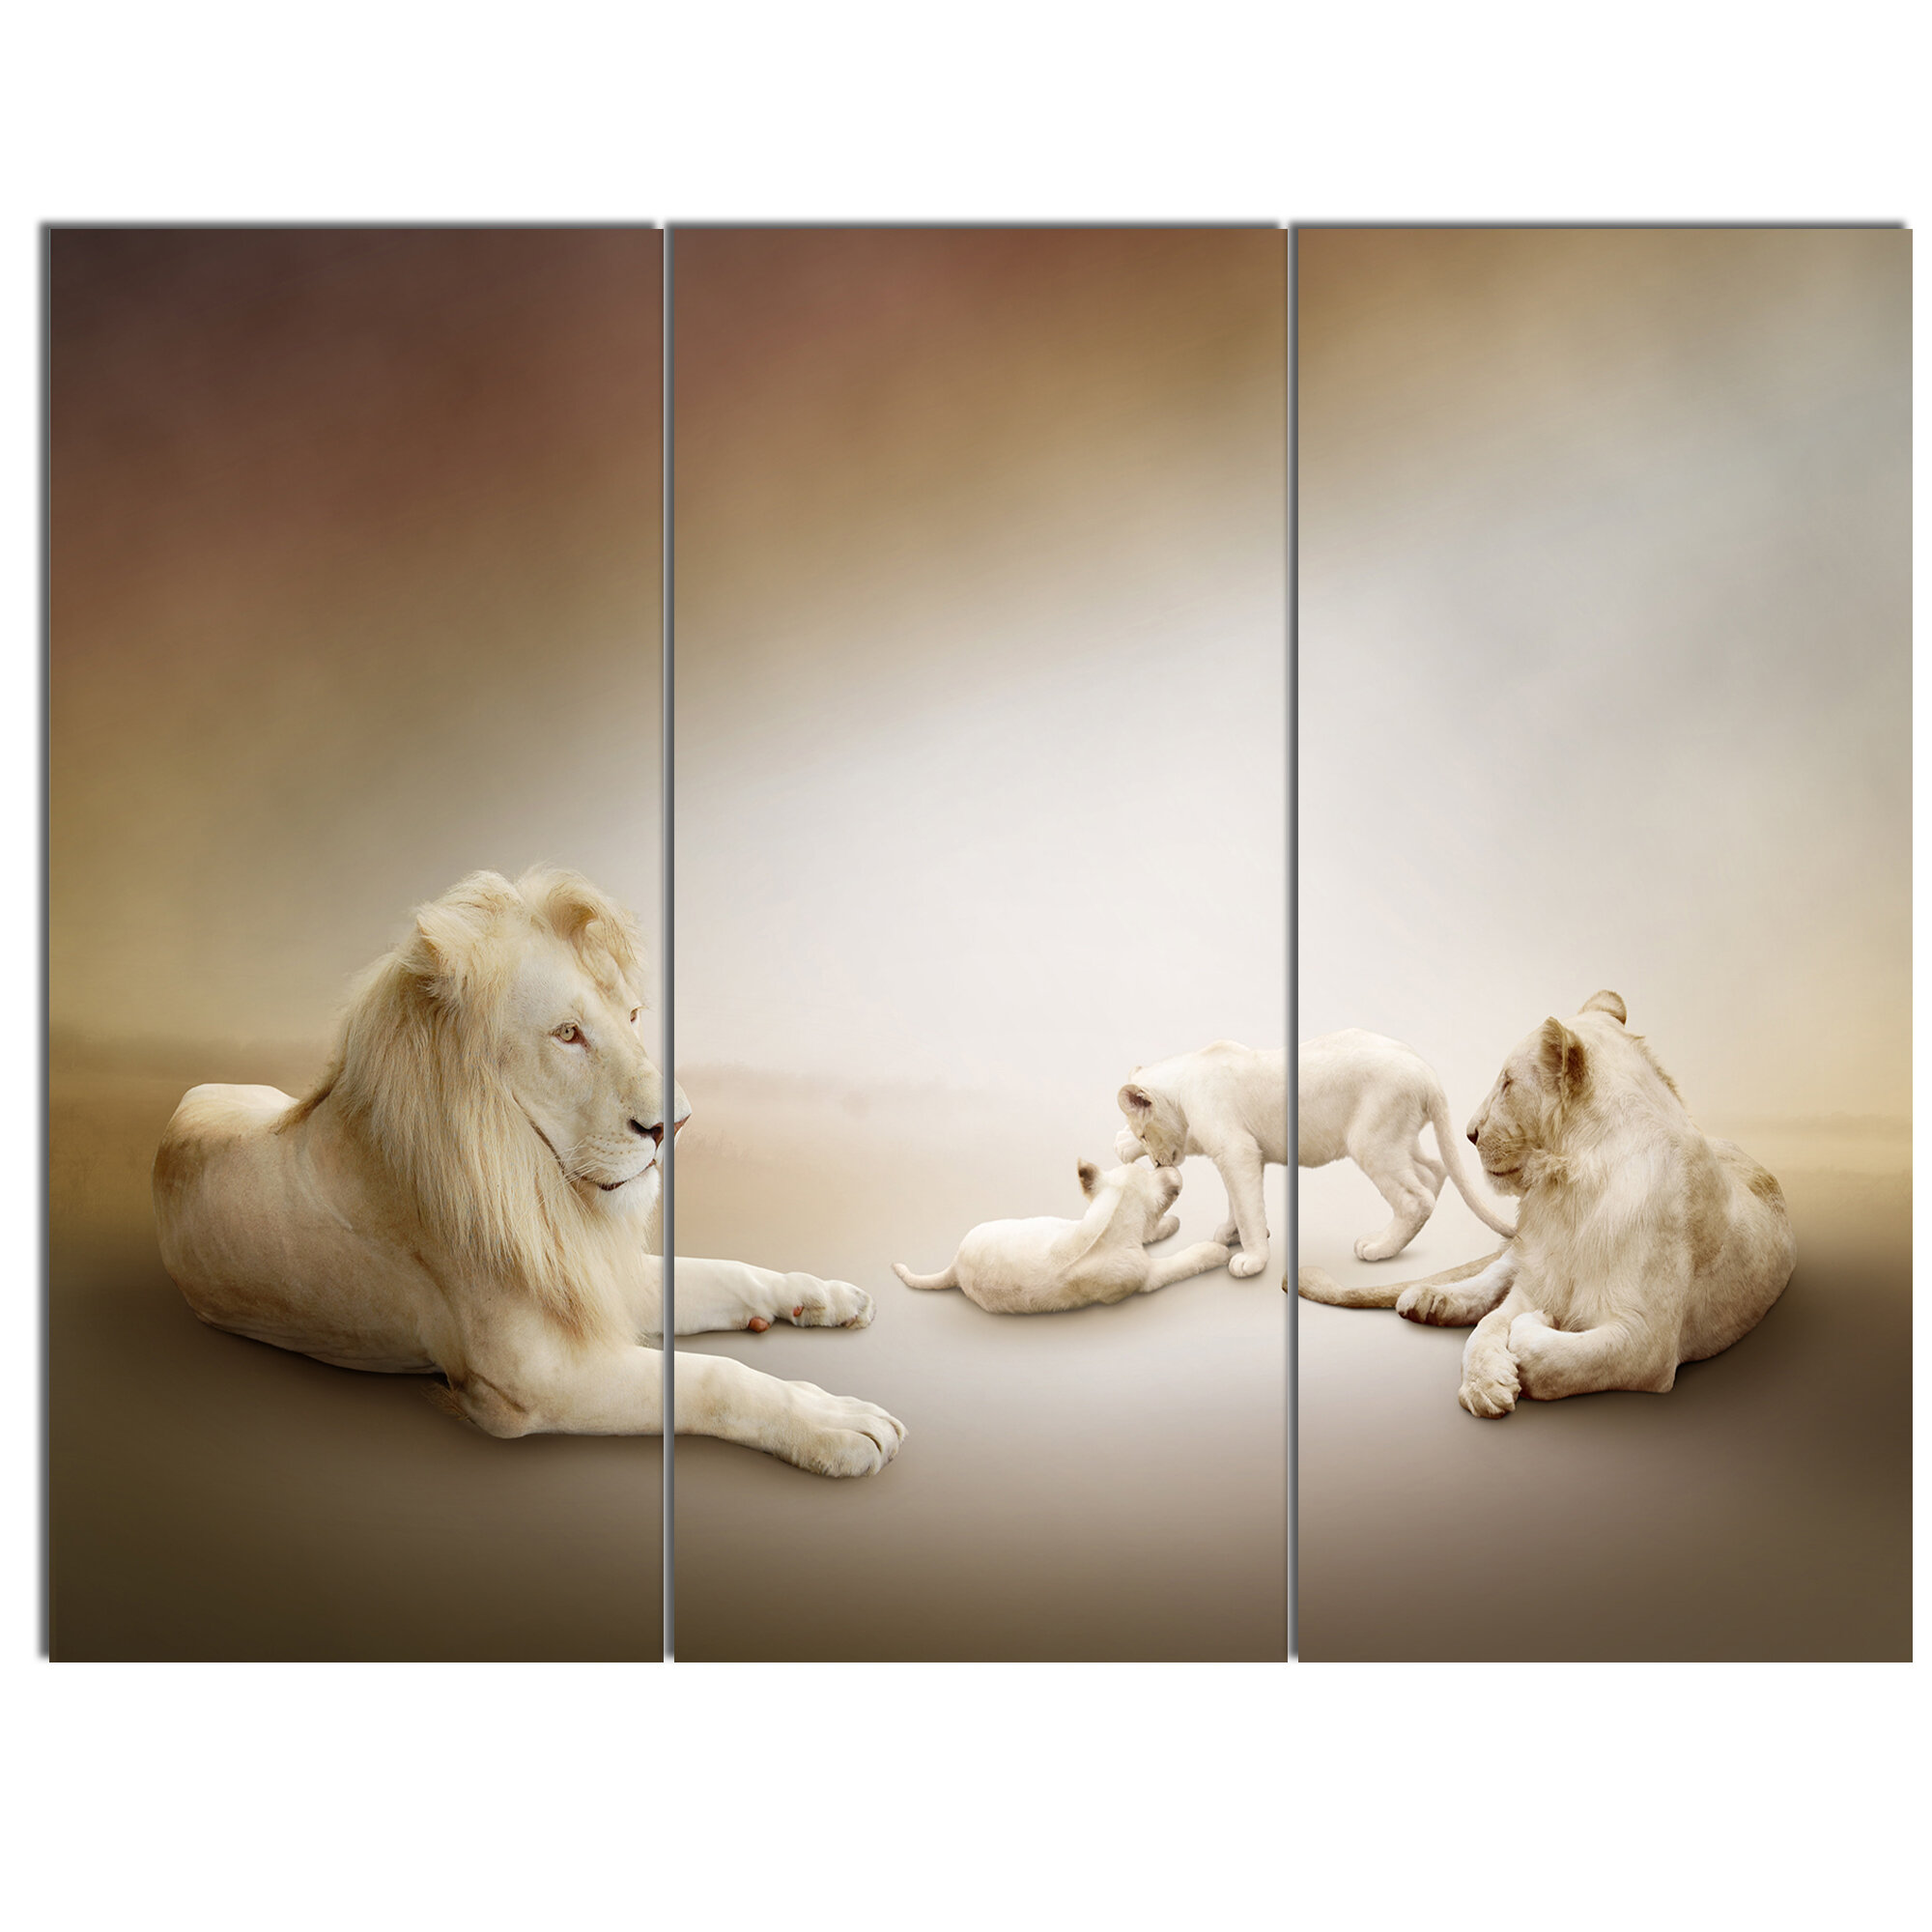 White lion family 3 piece wall art on wrapped canvas set